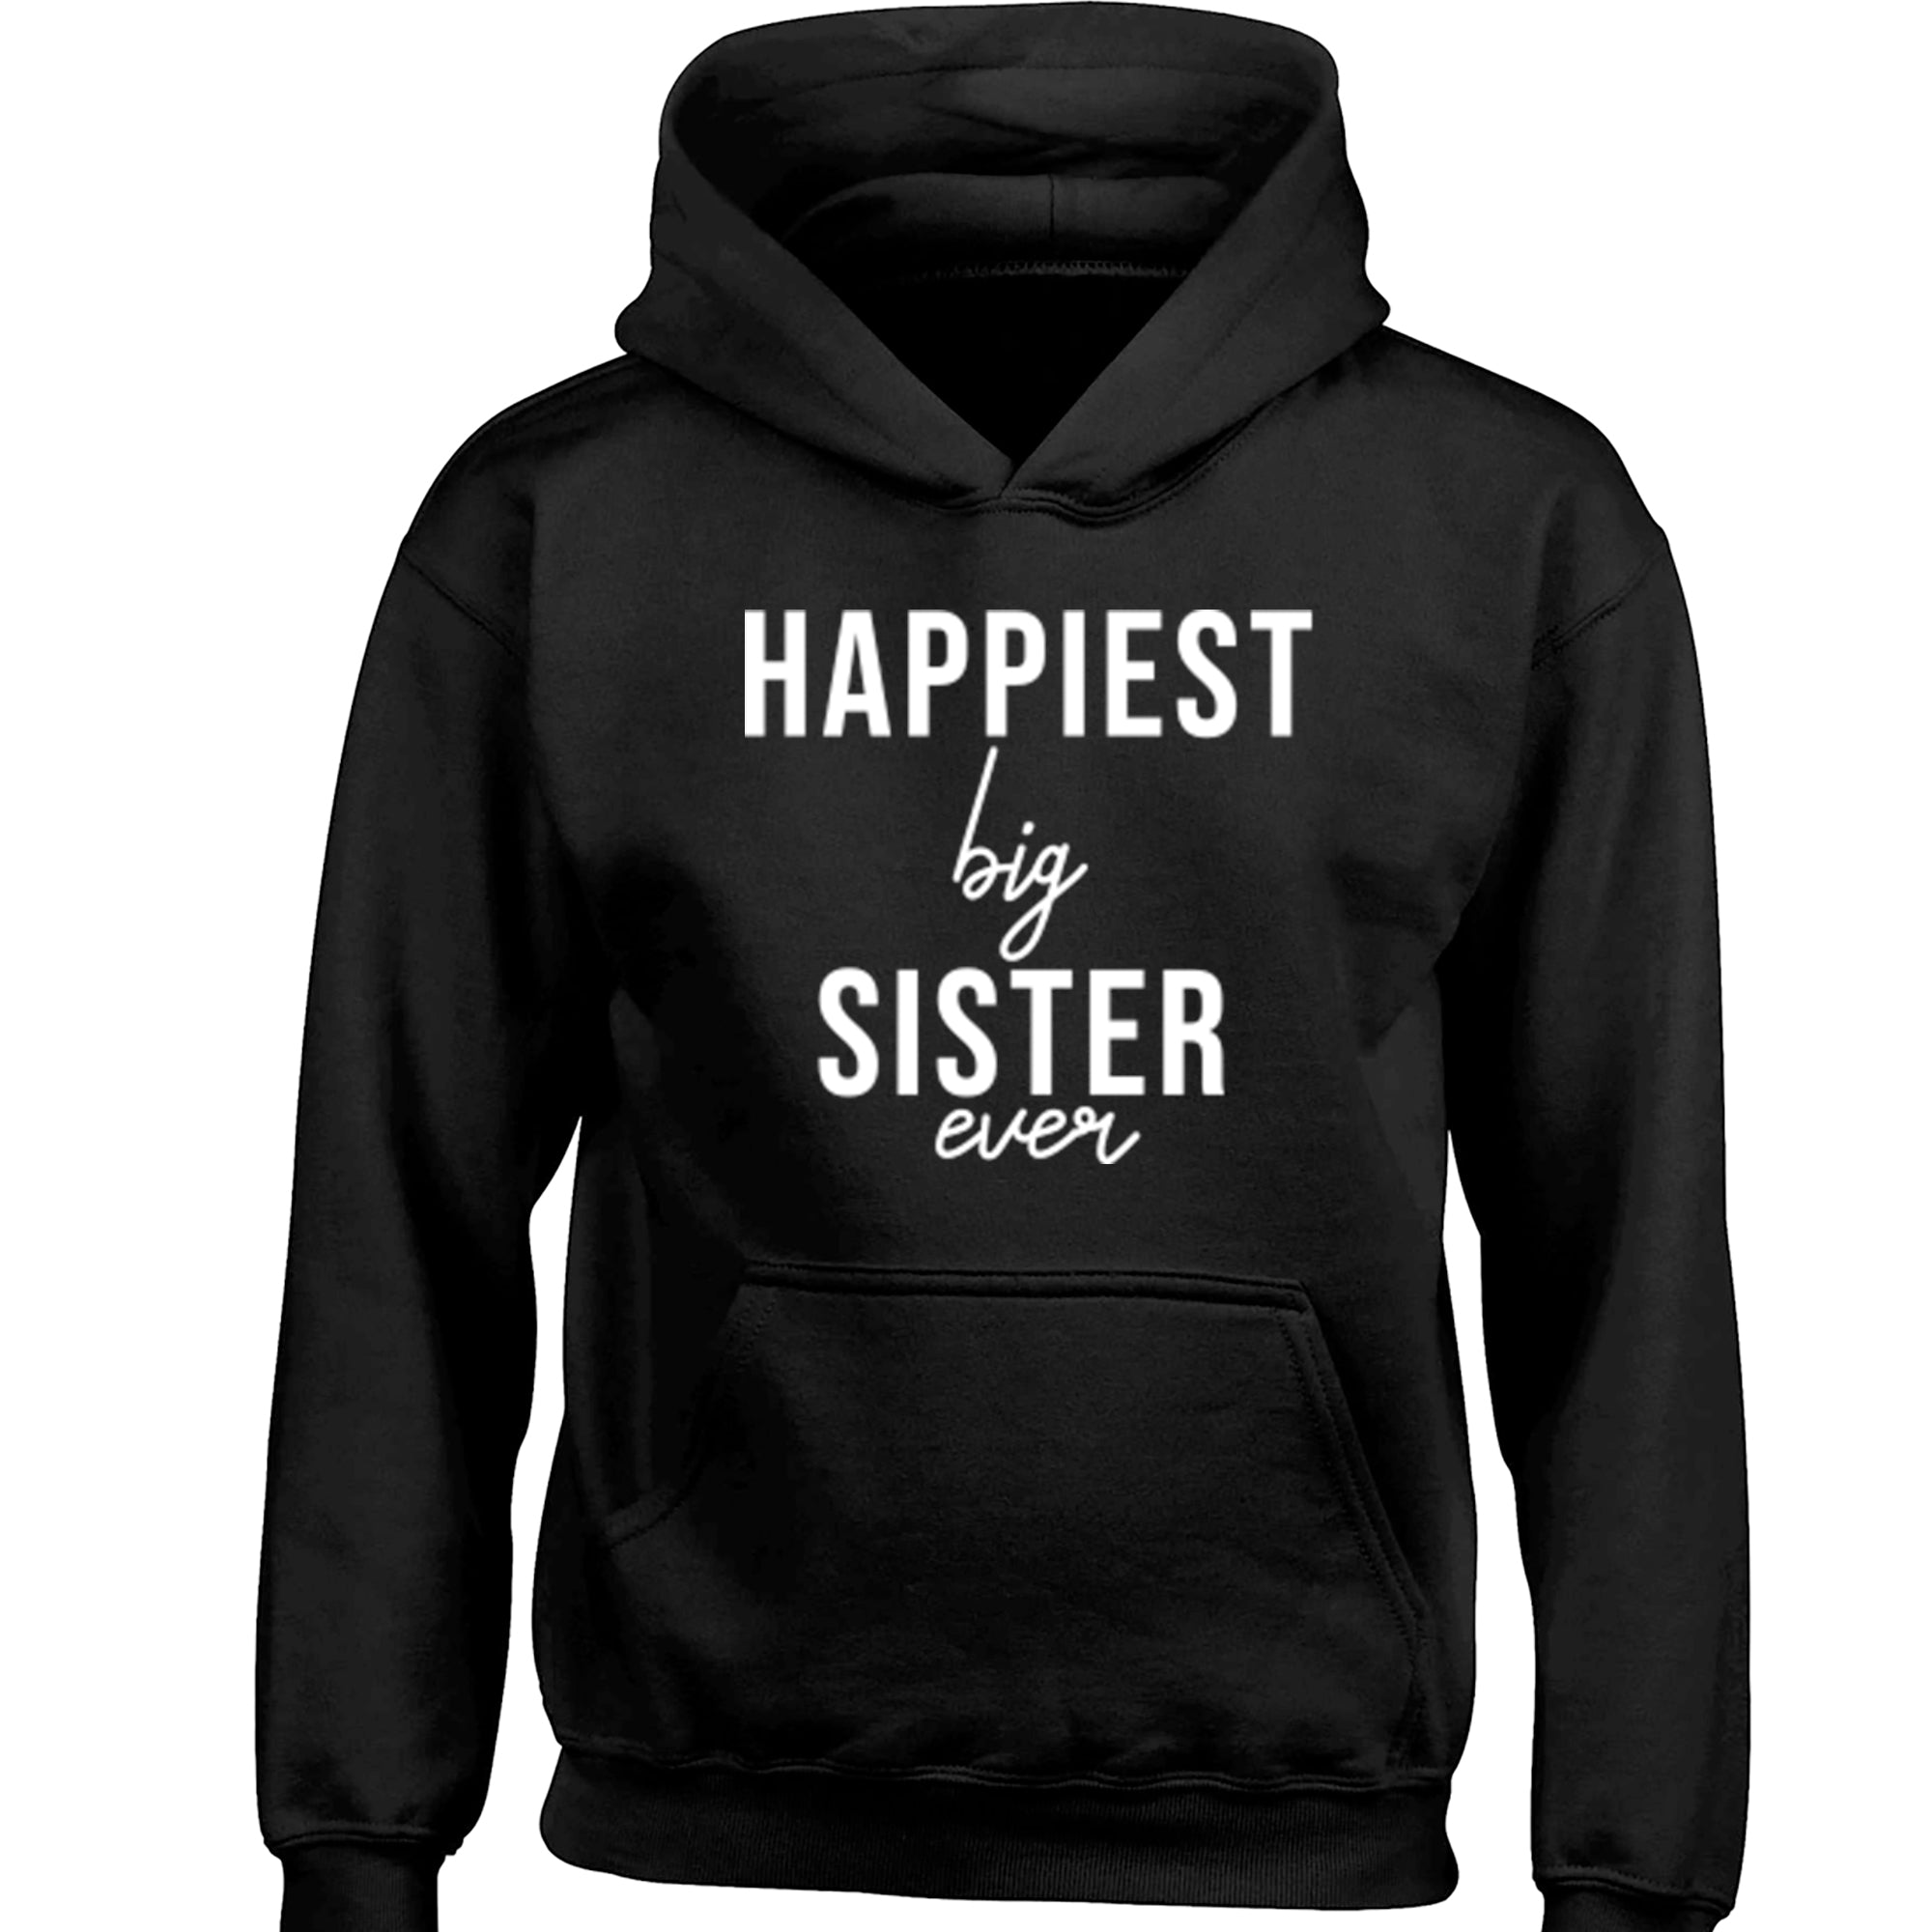 Happiest Big Sister Ever Childrens Ages 3/4-12/14 Unisex Hoodie S0515 - Illustrated Identity Ltd.